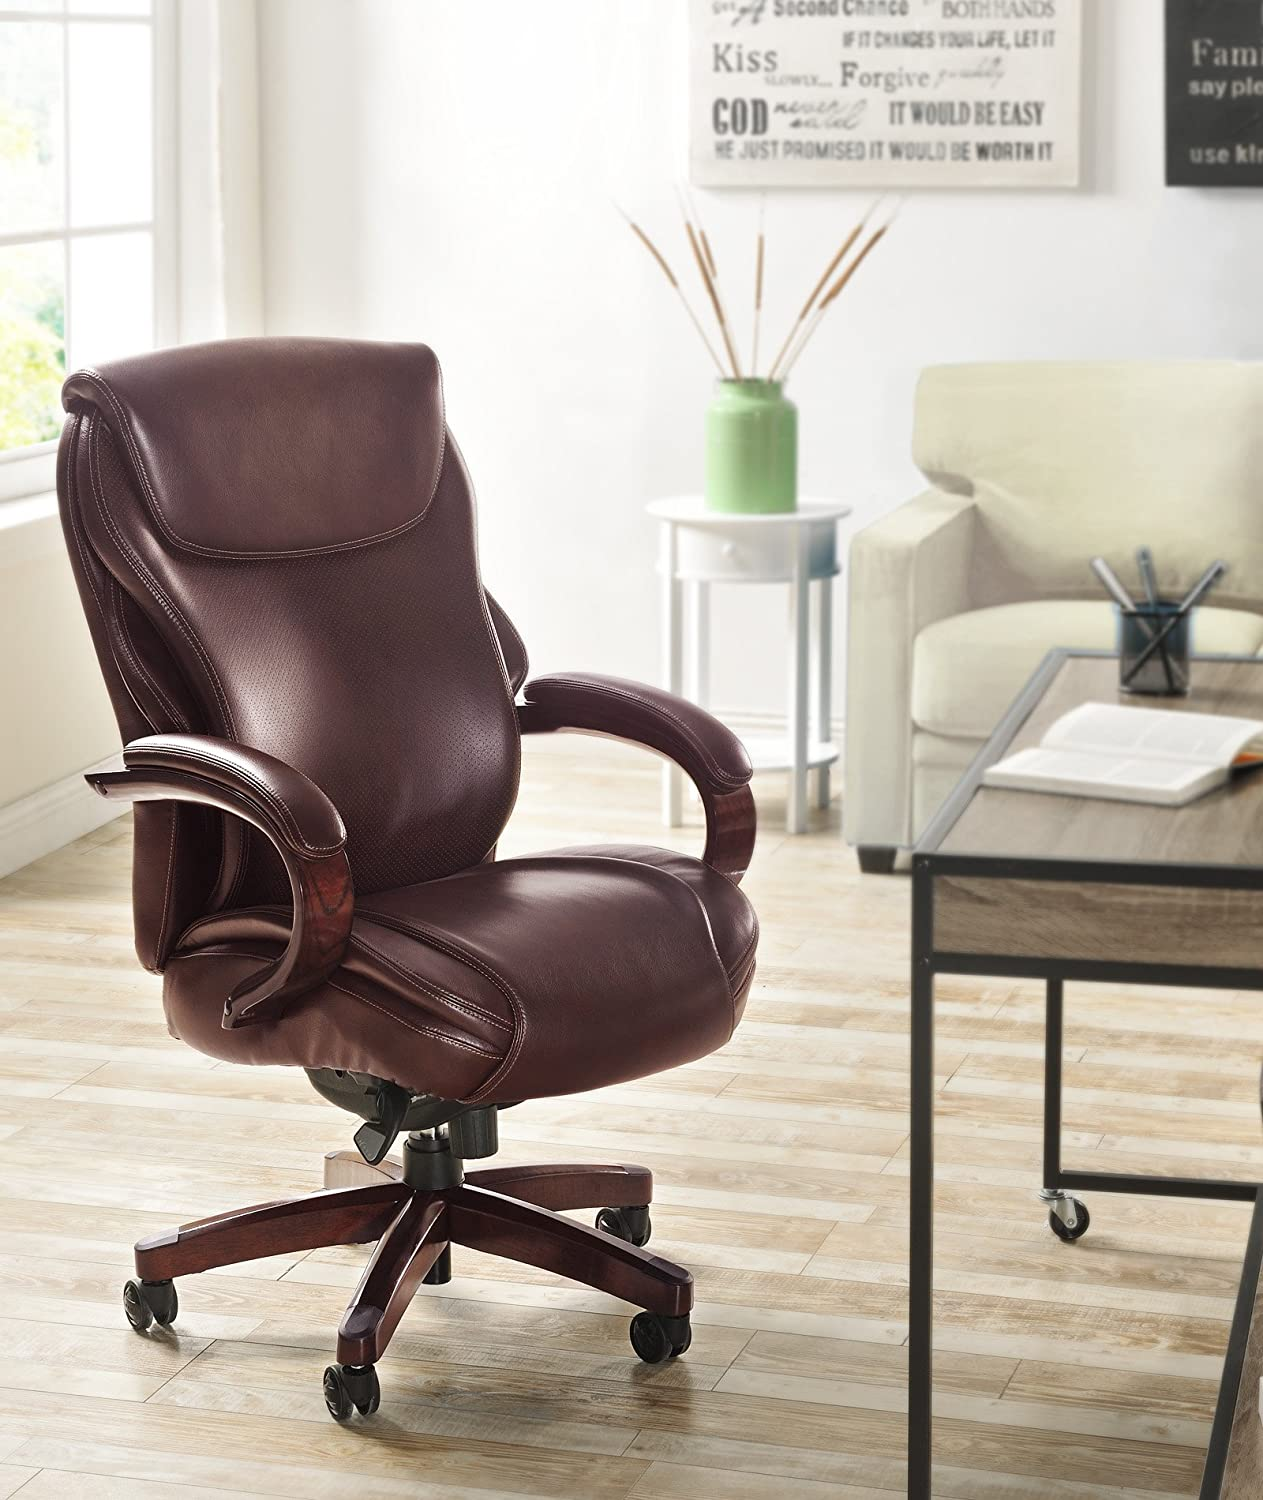 Amazoncom La Z Boy Hyland Executive Bonded Leather Office Chair